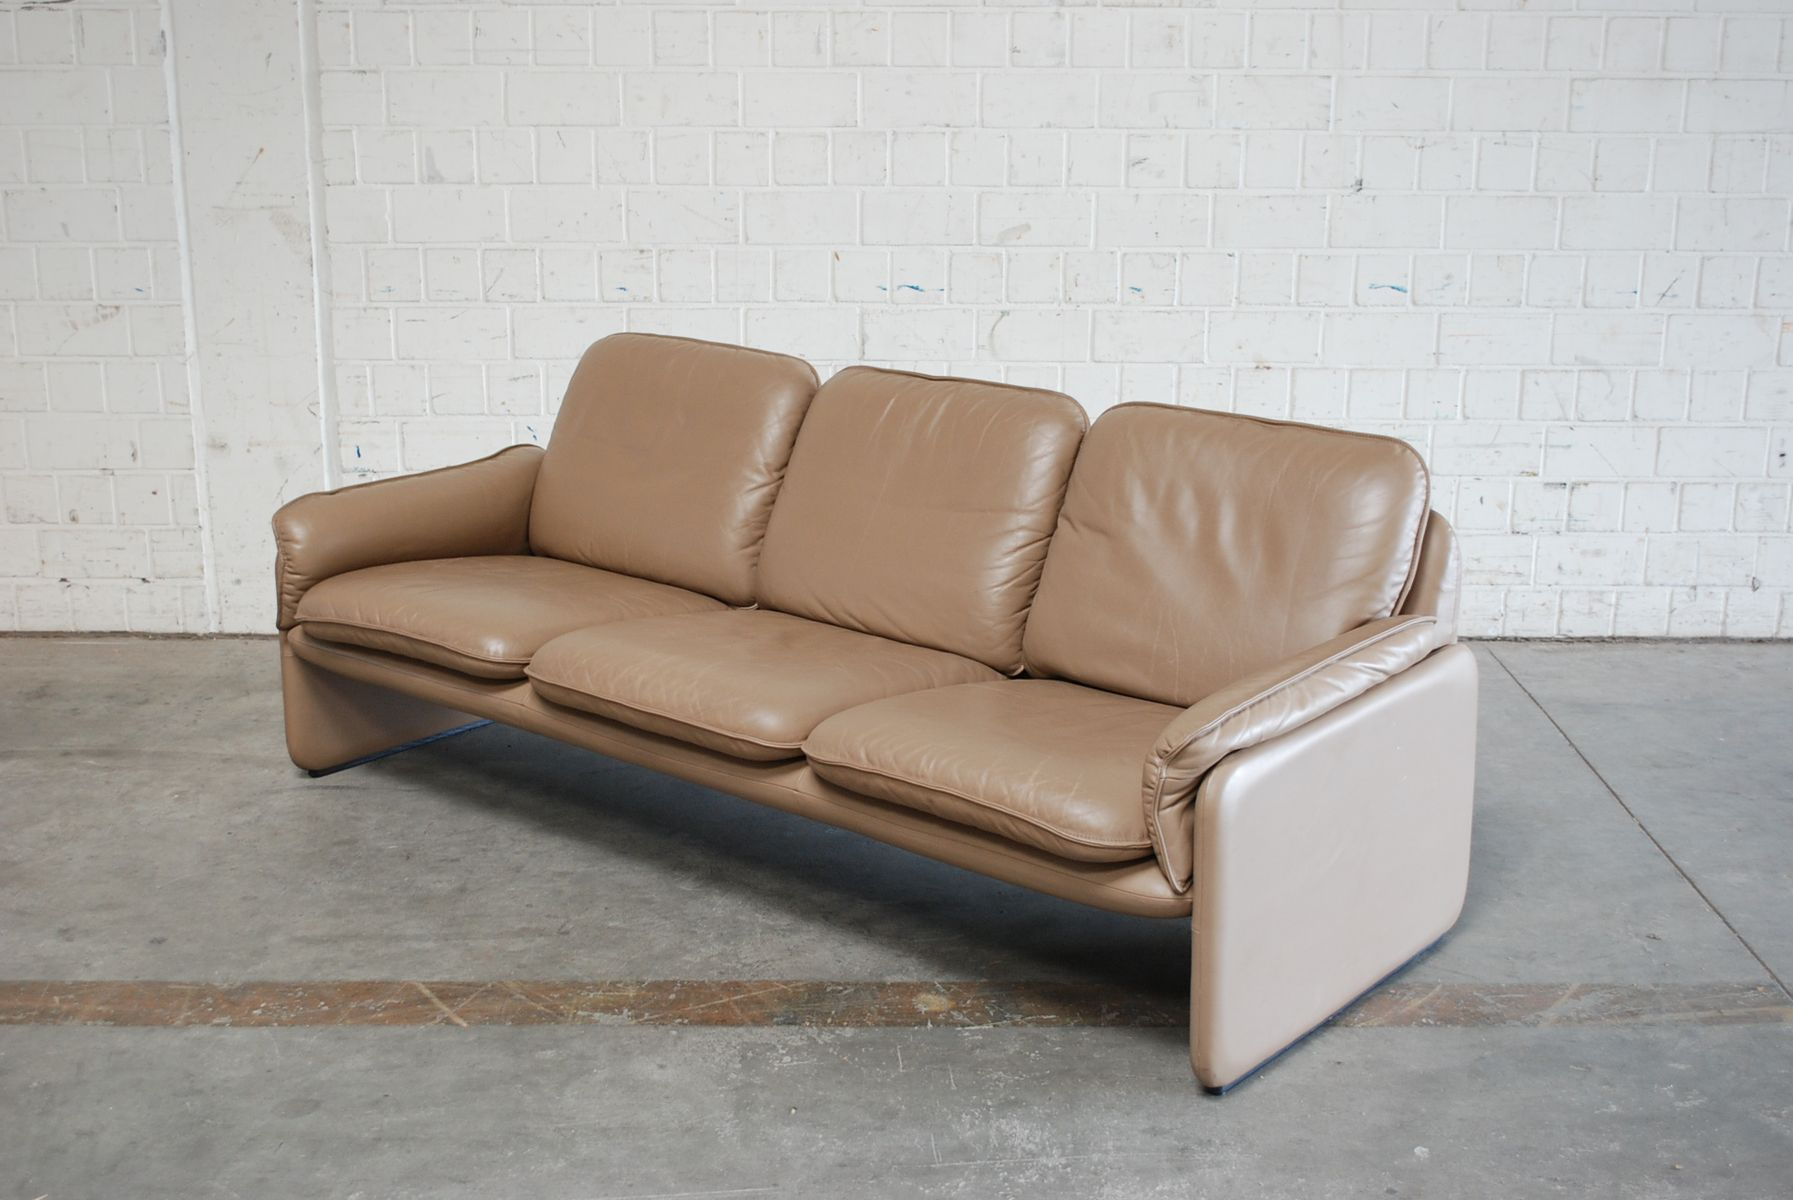 Vintage DS 61 Leather Sofa and Lounge Chair from De Sede for sale